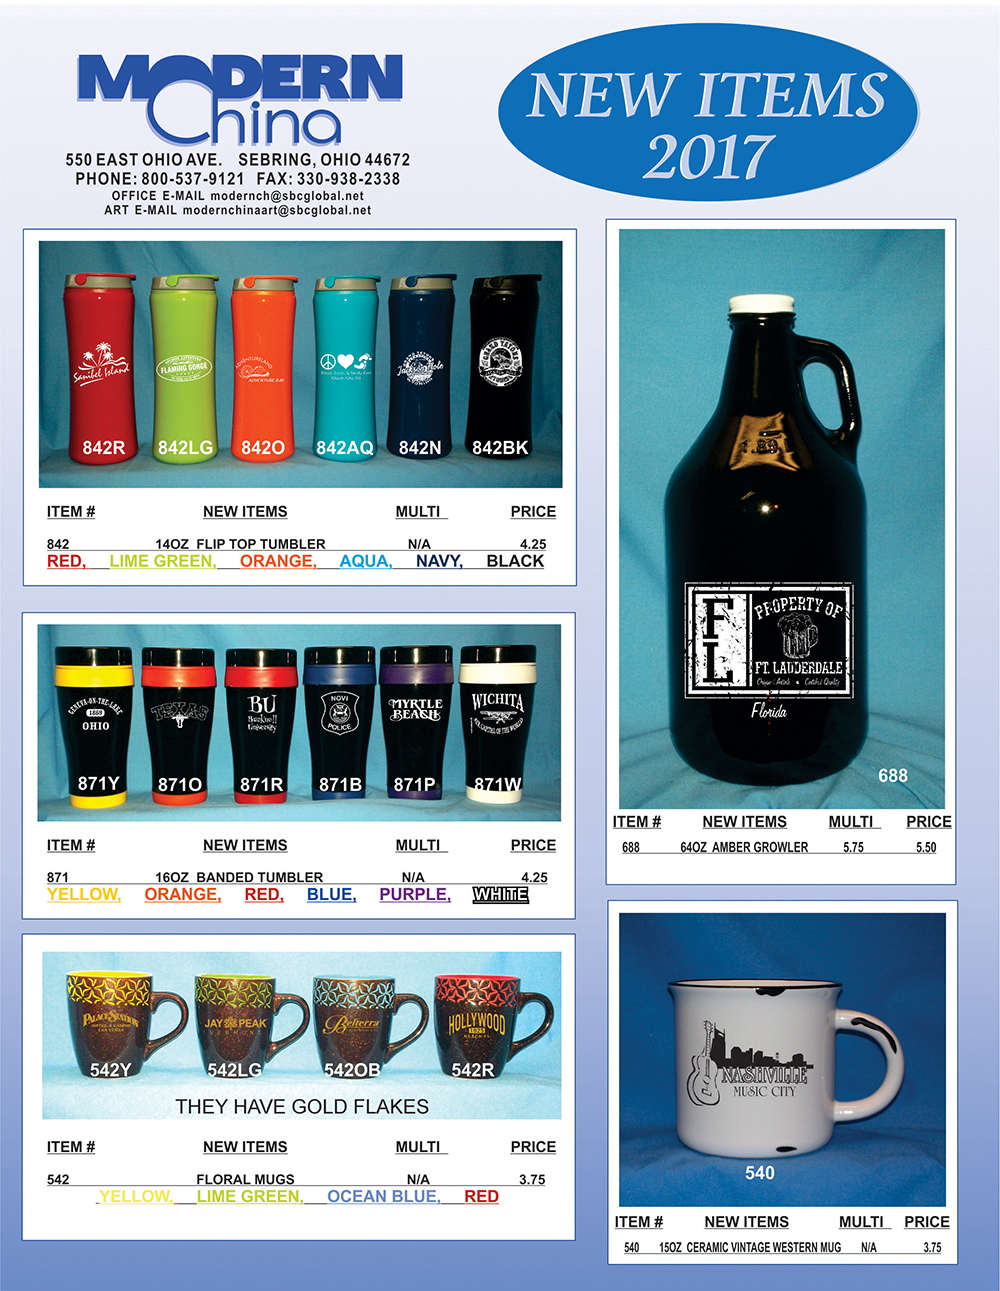 Modern China New Items for 2016-Page 4